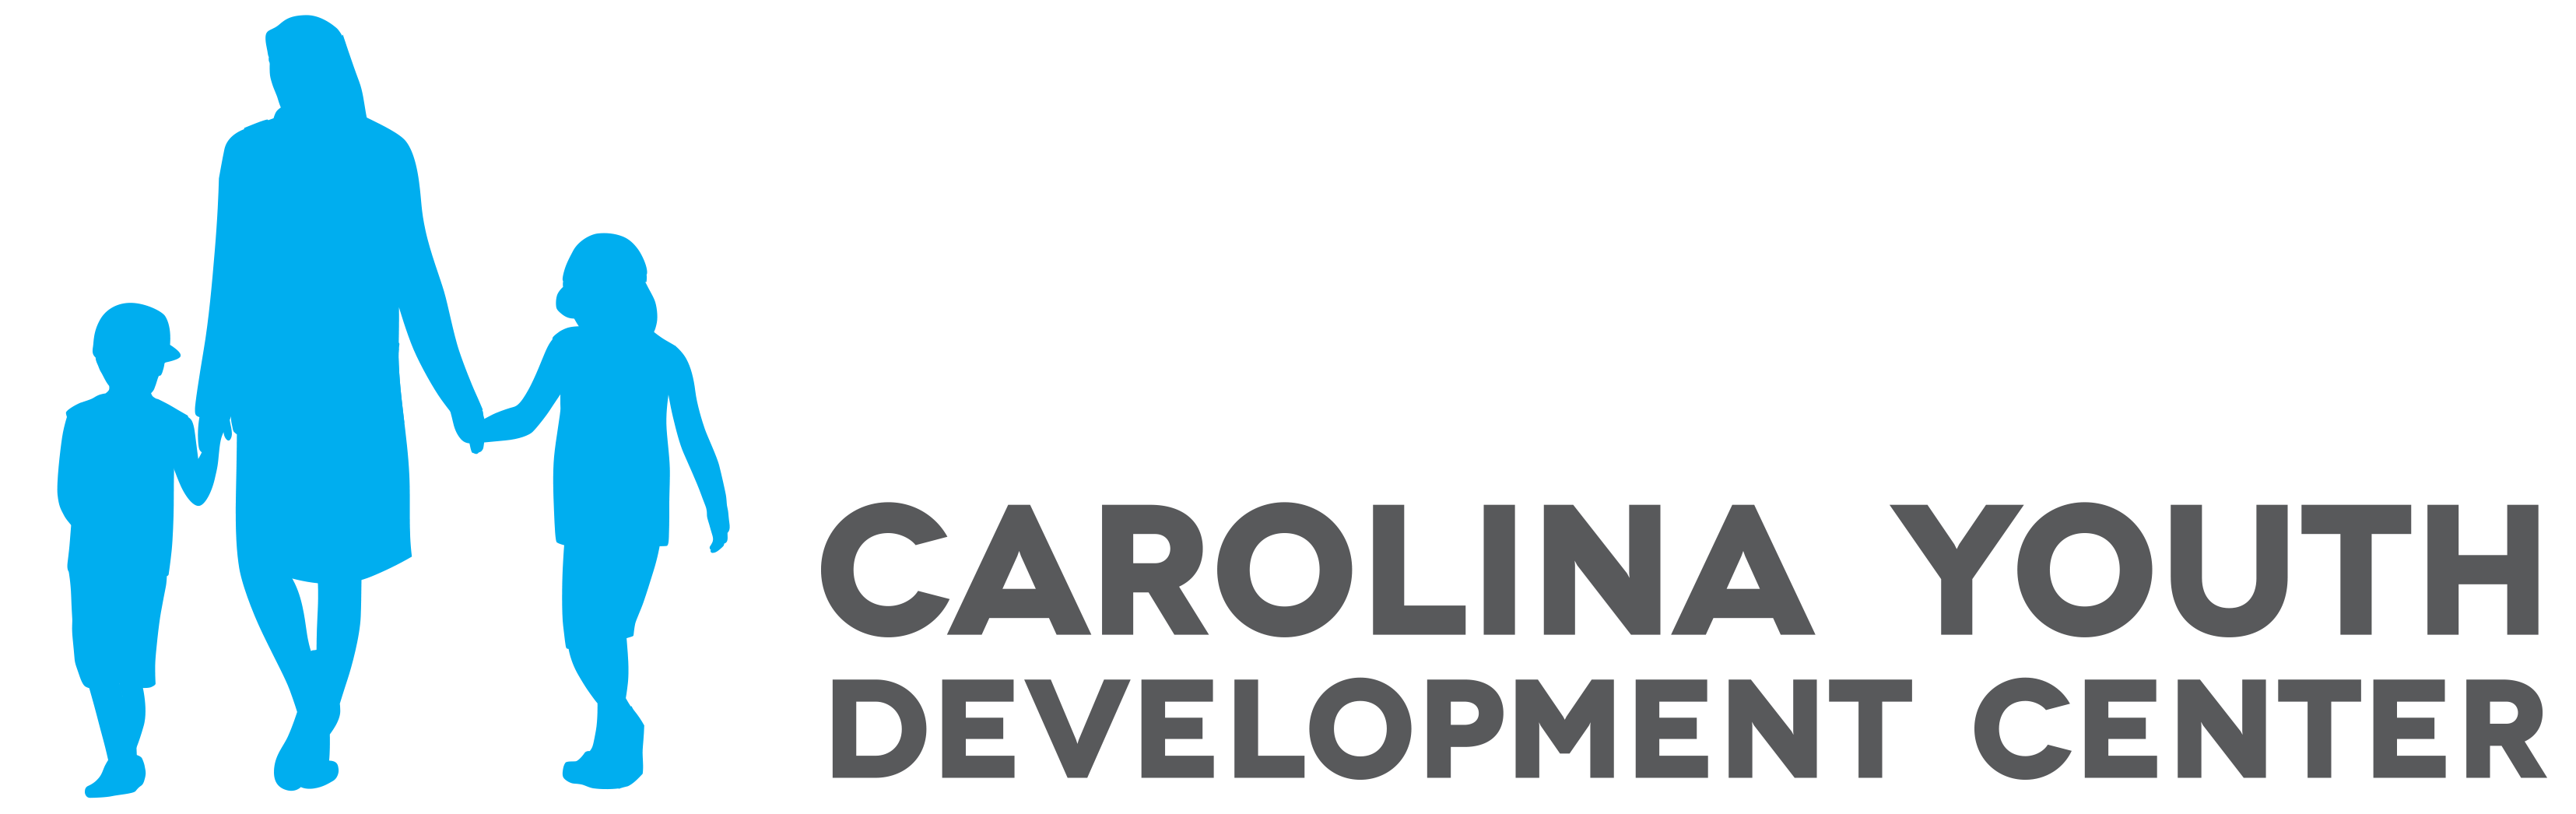 Carolina Youth Development Center | Protecting childhood. Preparing for adulthood.